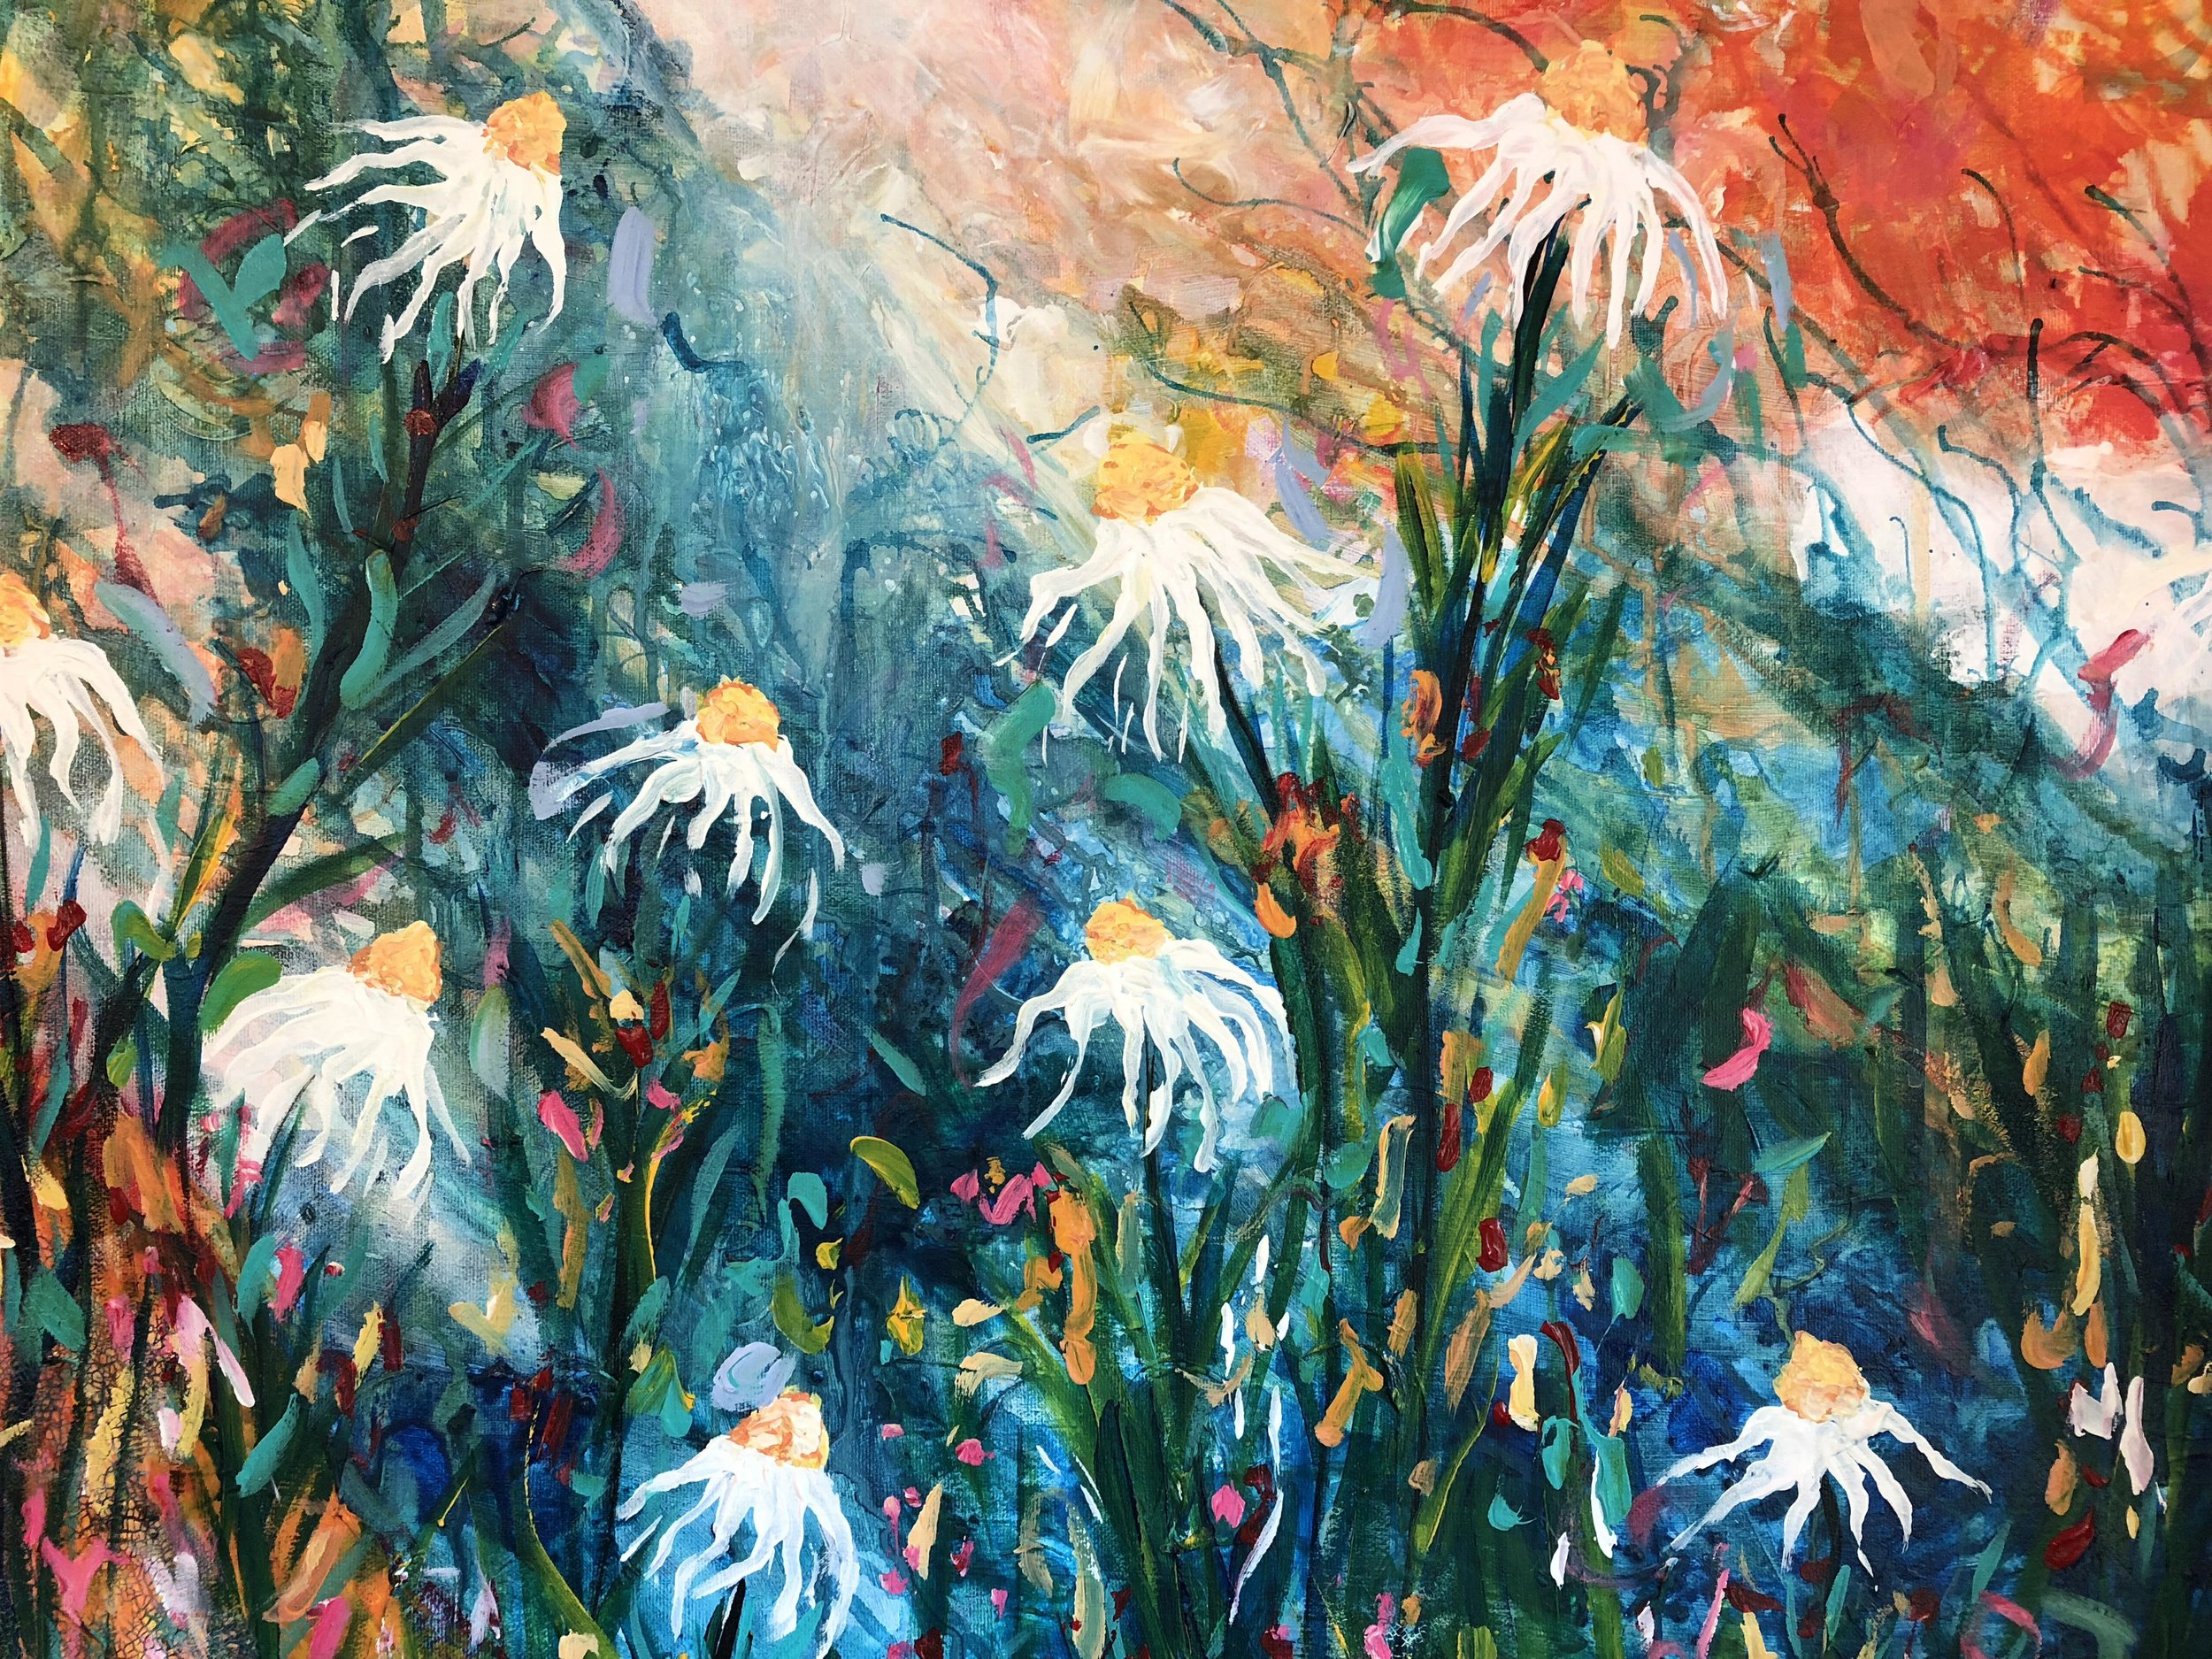 Shannon Thorpe Frederick   Shannon finds inspiration for her artwork by spending time outside, appreciating nature. She uses bold colours that make her feel happy and uplifted. She is a self taught artist who has been painting and selling her art for over a decade...